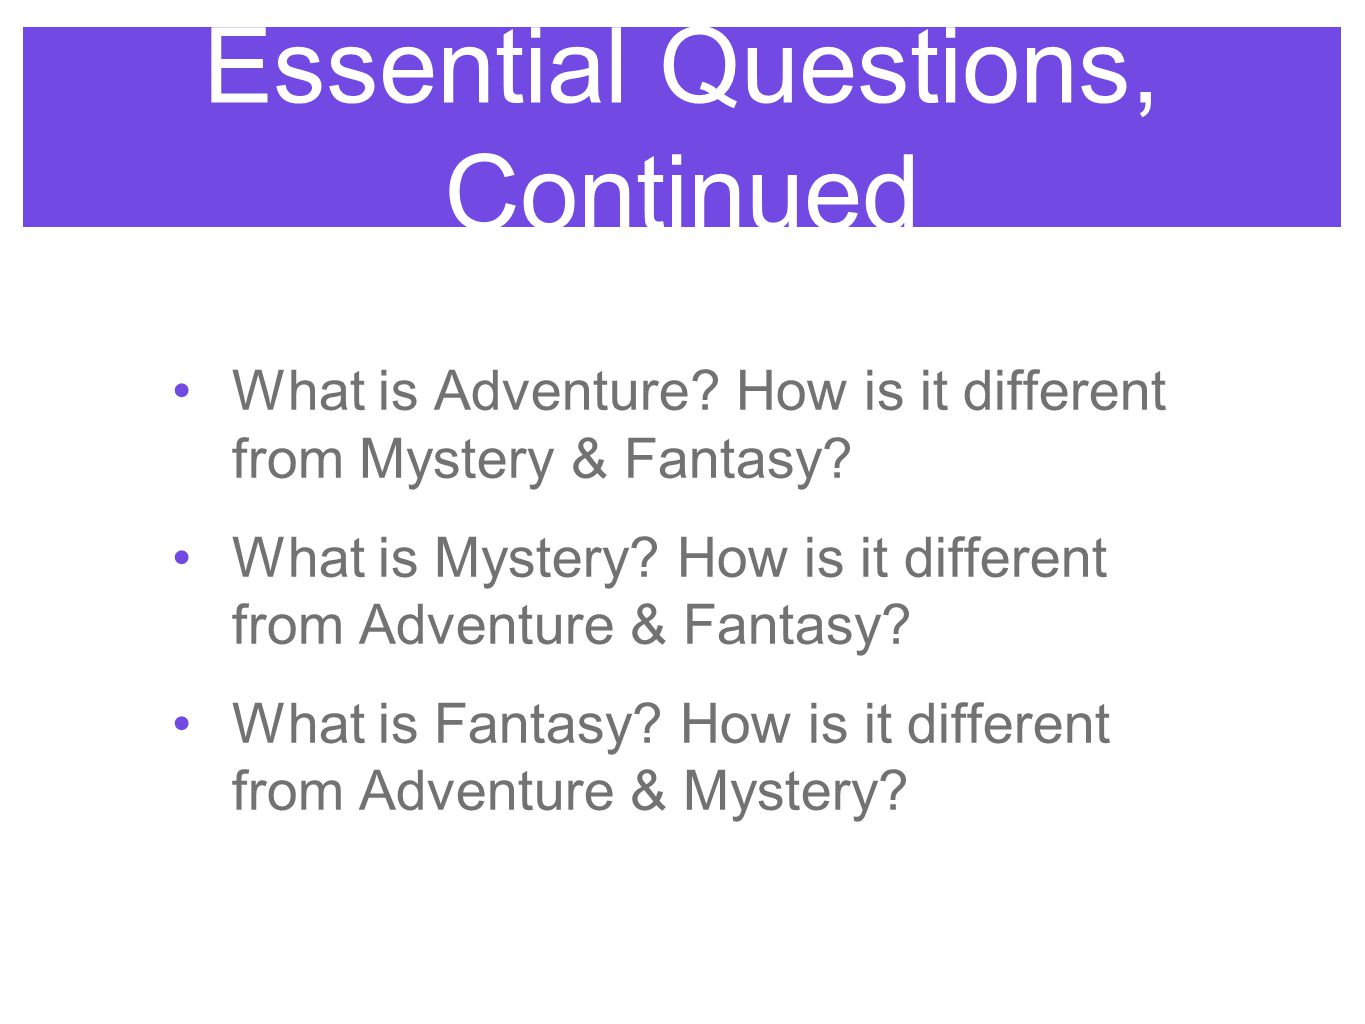 Essential Questions, Continued